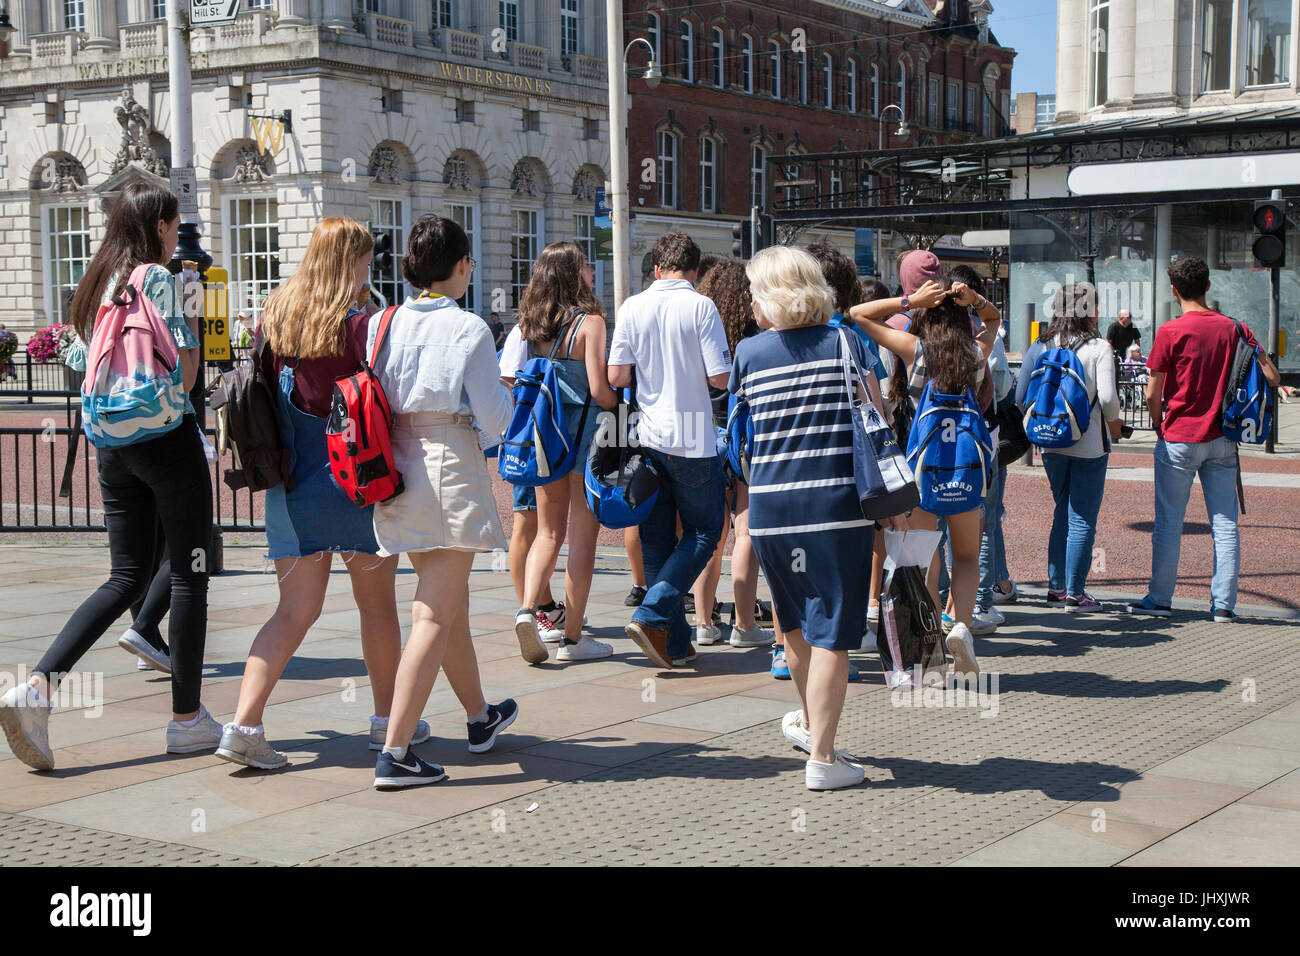 Southport, Merseyside, UK. 17th Jul, 2017. Busy Town Centre, with tourists and shoppers enjoying the sunshine and Stock Photo